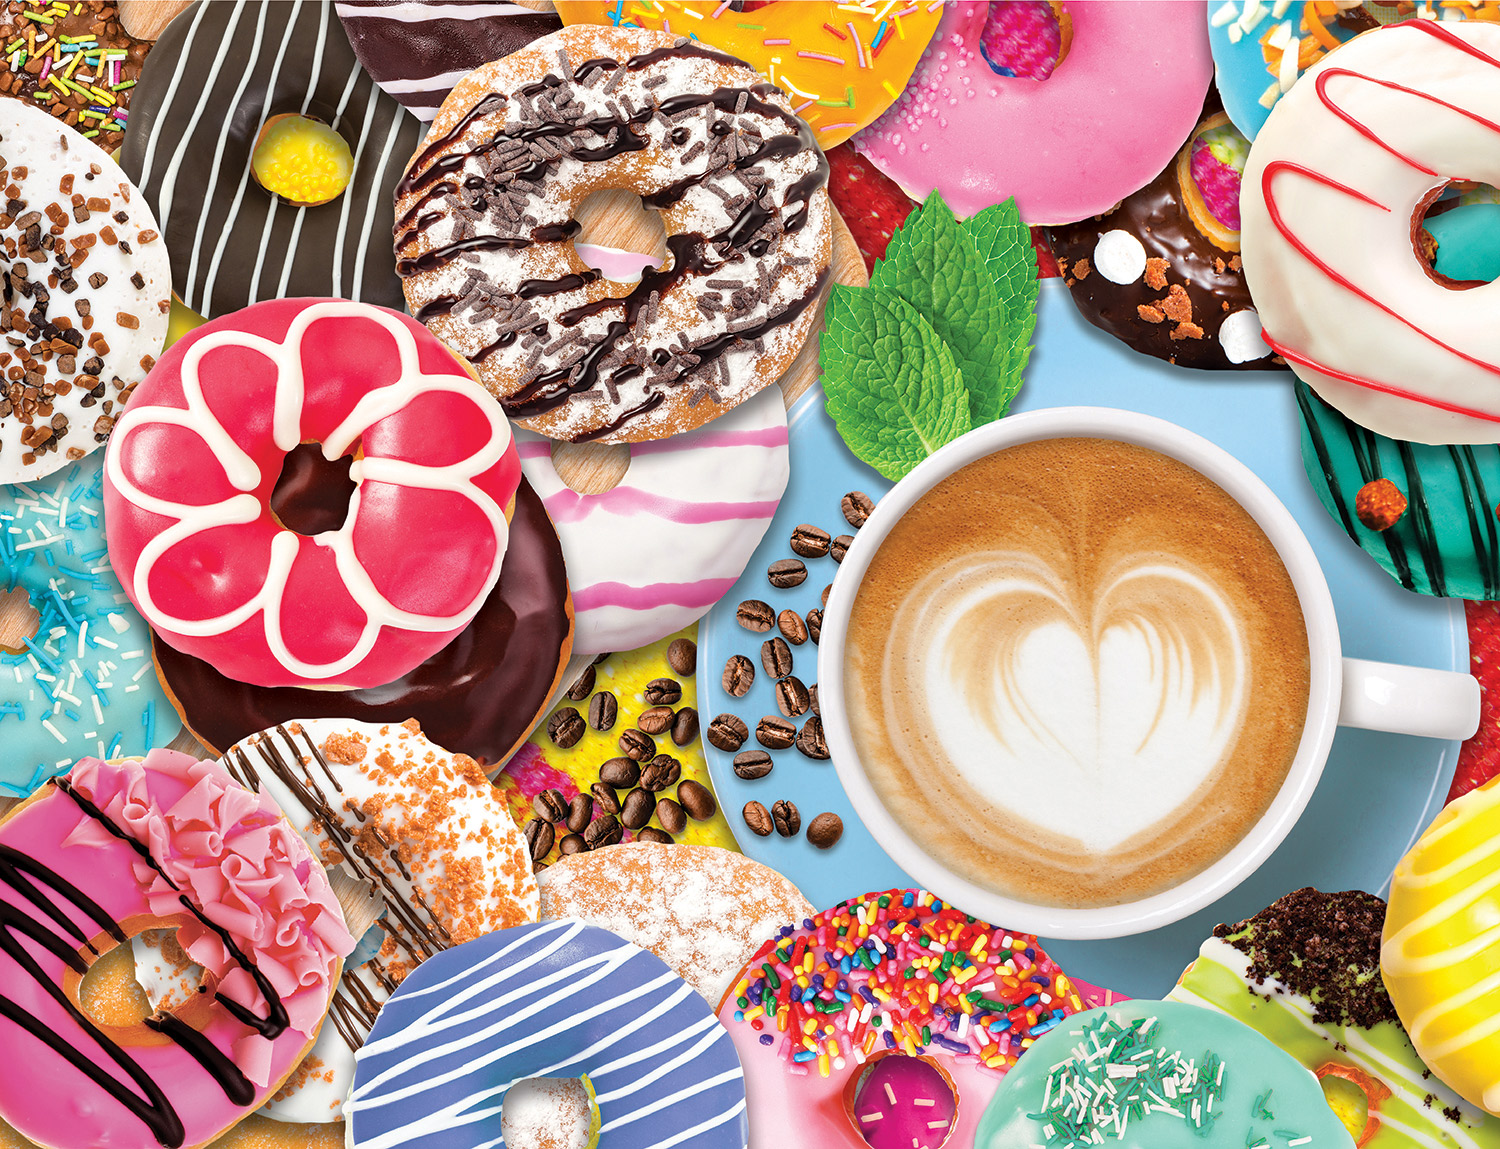 Donuts N' Coffee Food and Drink Jigsaw Puzzle